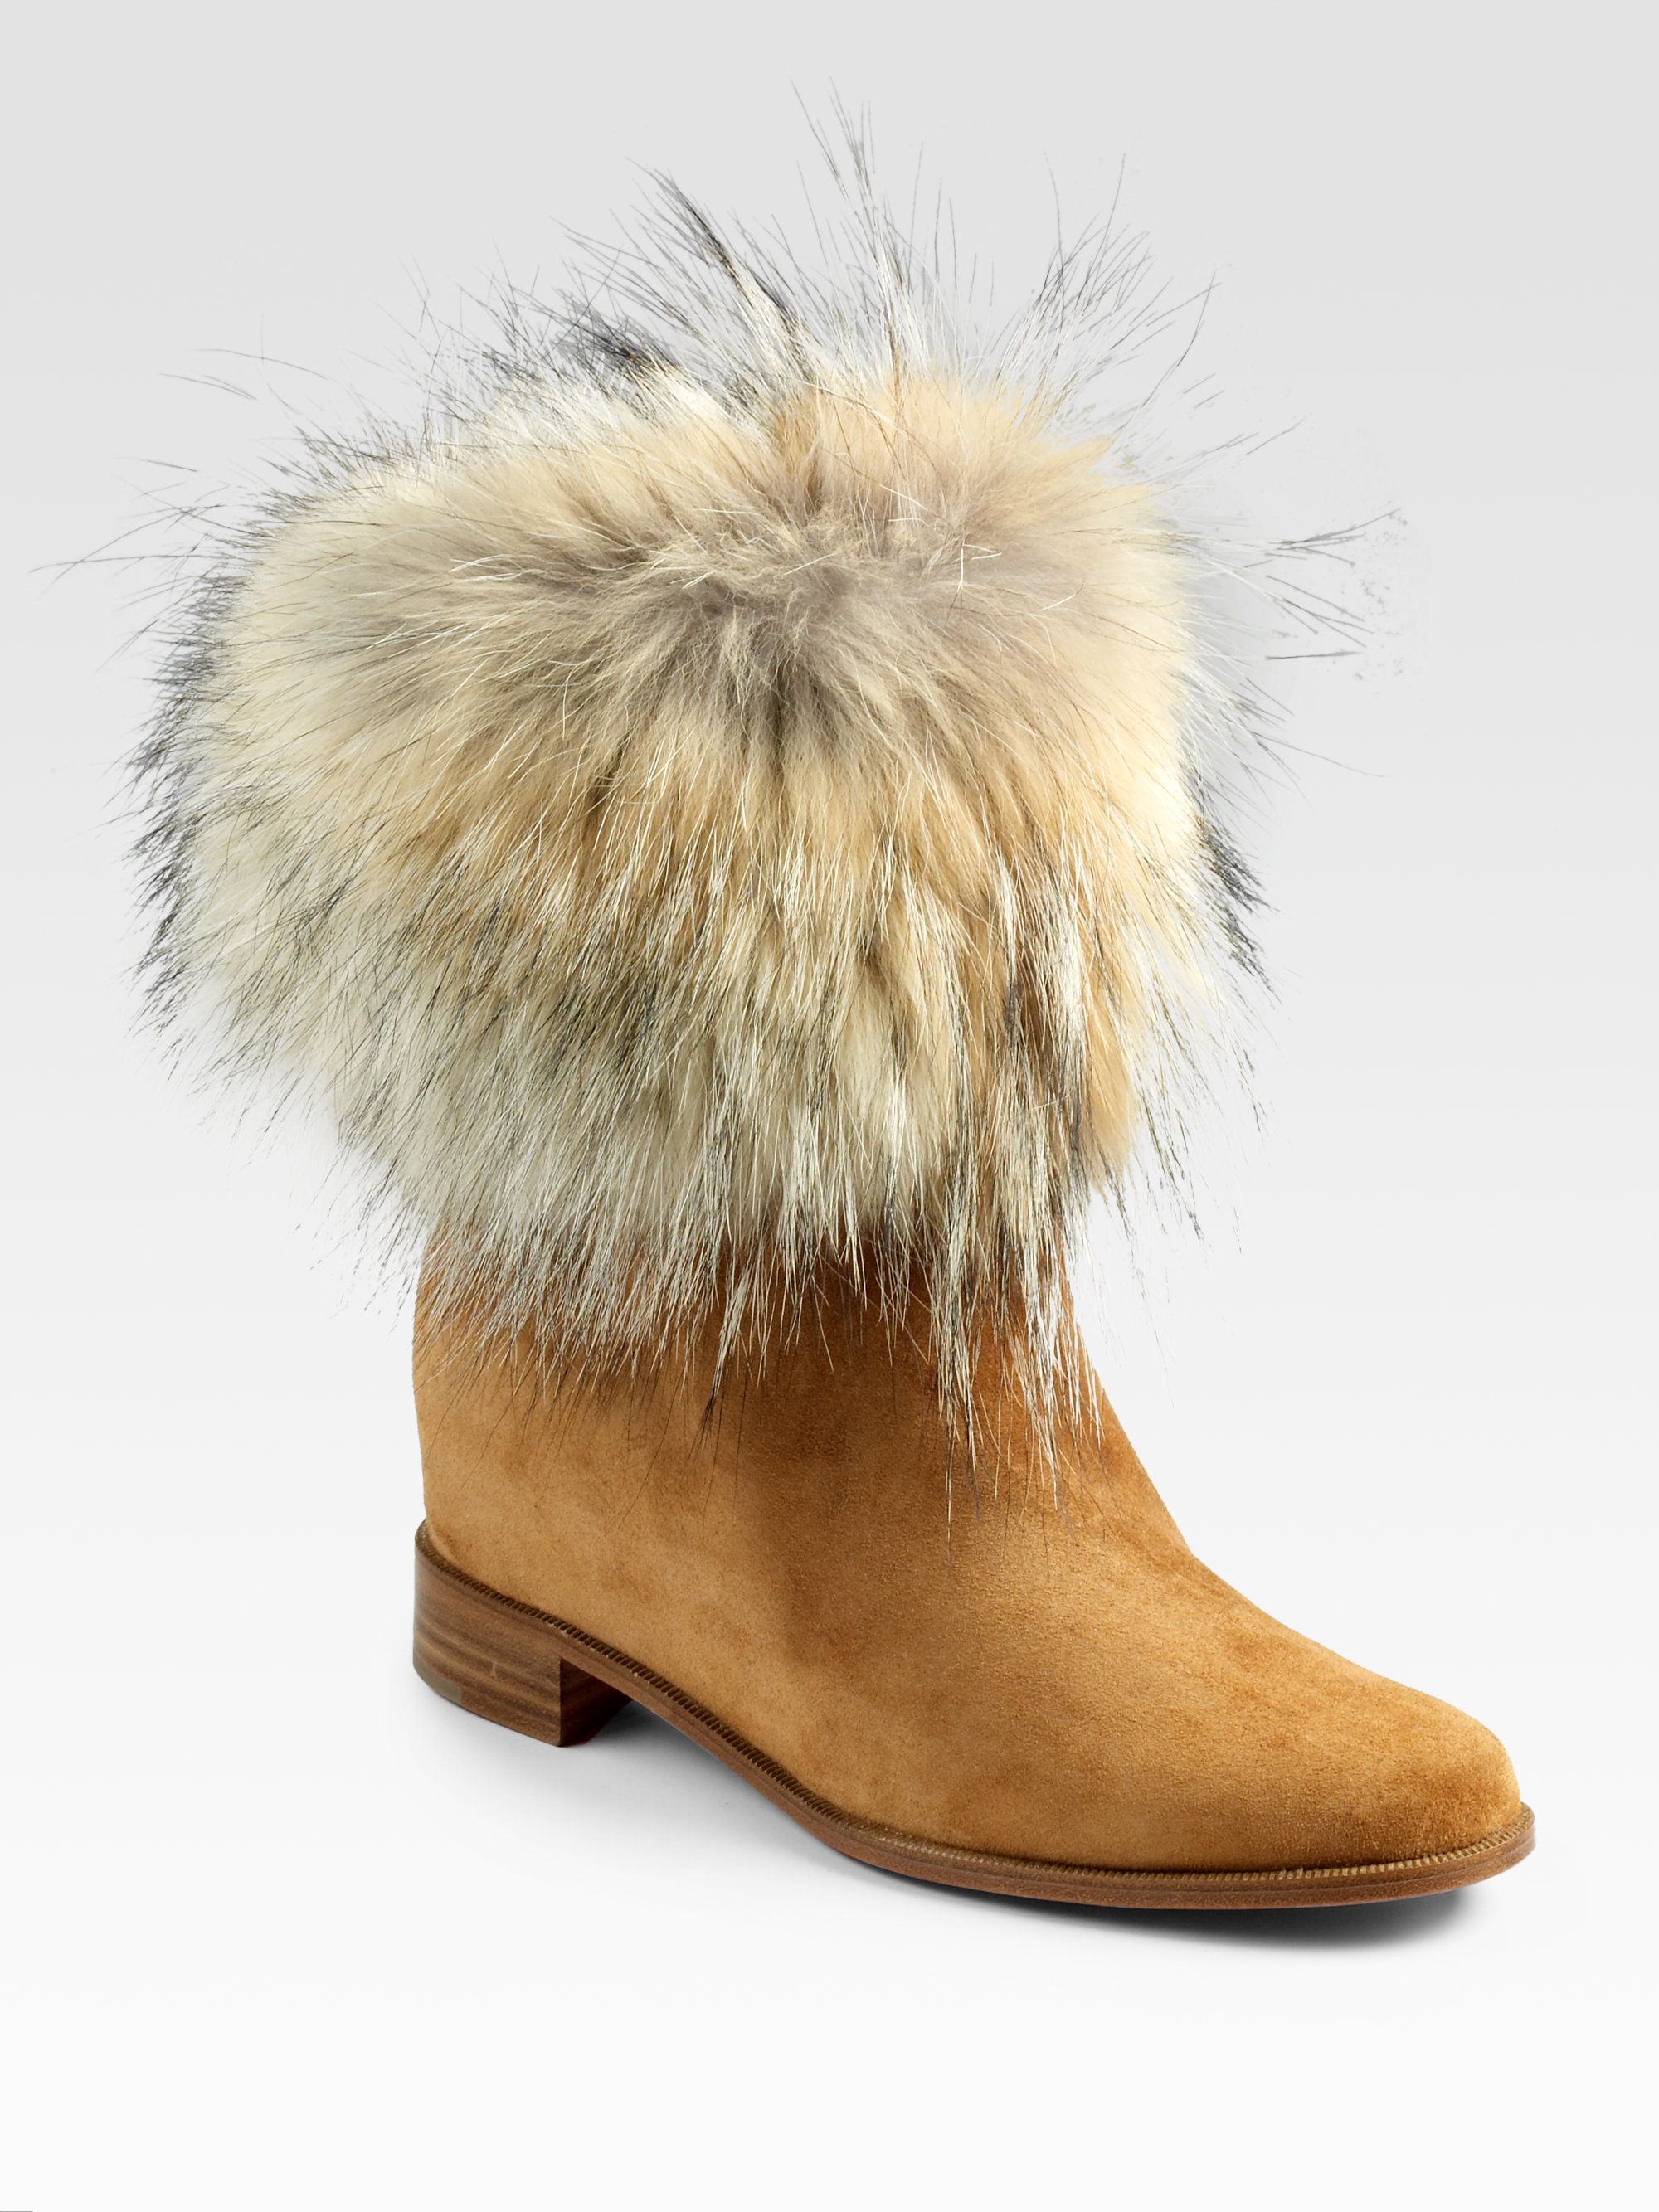 93fe8e3d9fa2 ... toundra coyote fur trimmed suede ankle 0651e e1b00  buy lyst christian  louboutin mazurka coyote fur suede boots in brown 778da c0039